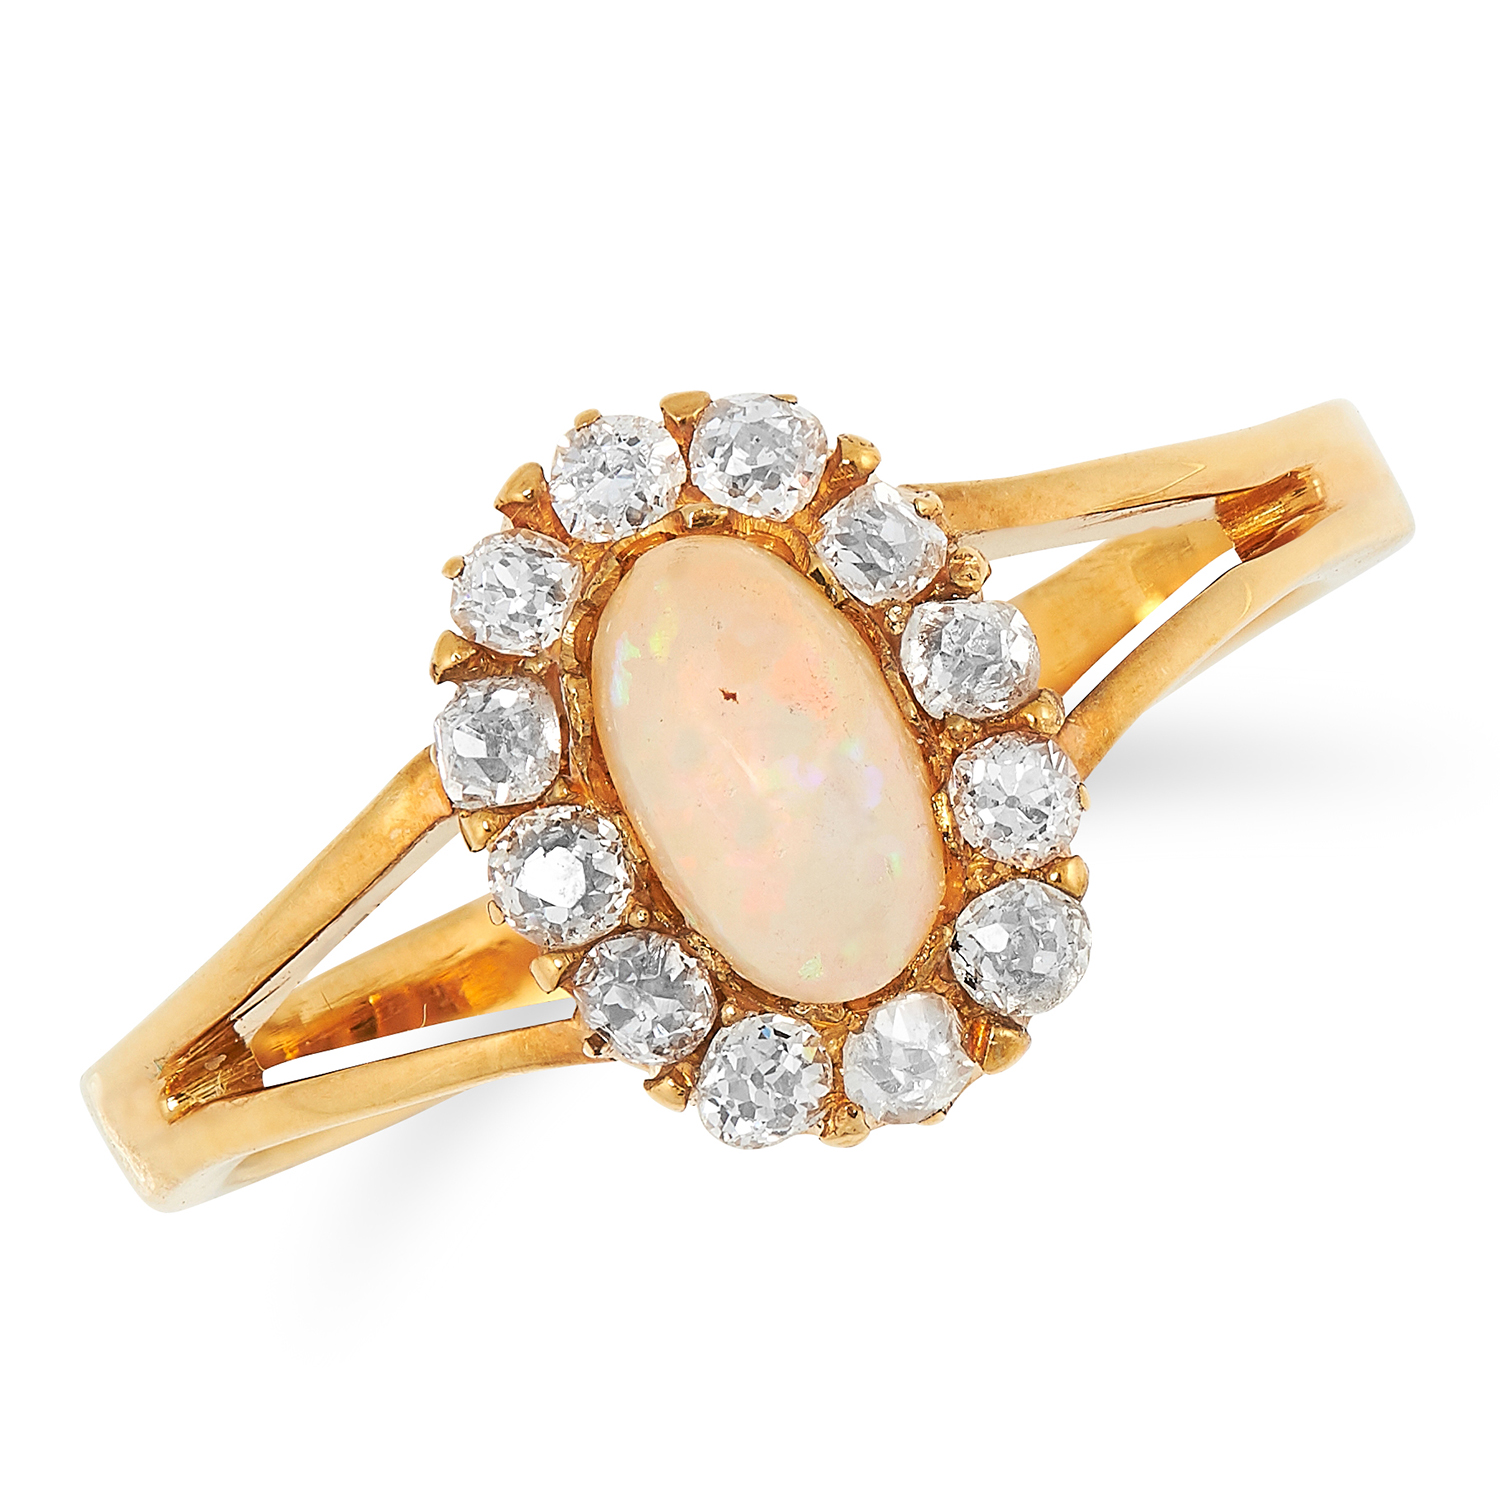 Los 39 - AN ANTIQUE OPAL AND DIAMOND CLUSTER RING set with a cabochon opal in a cluster of old cut